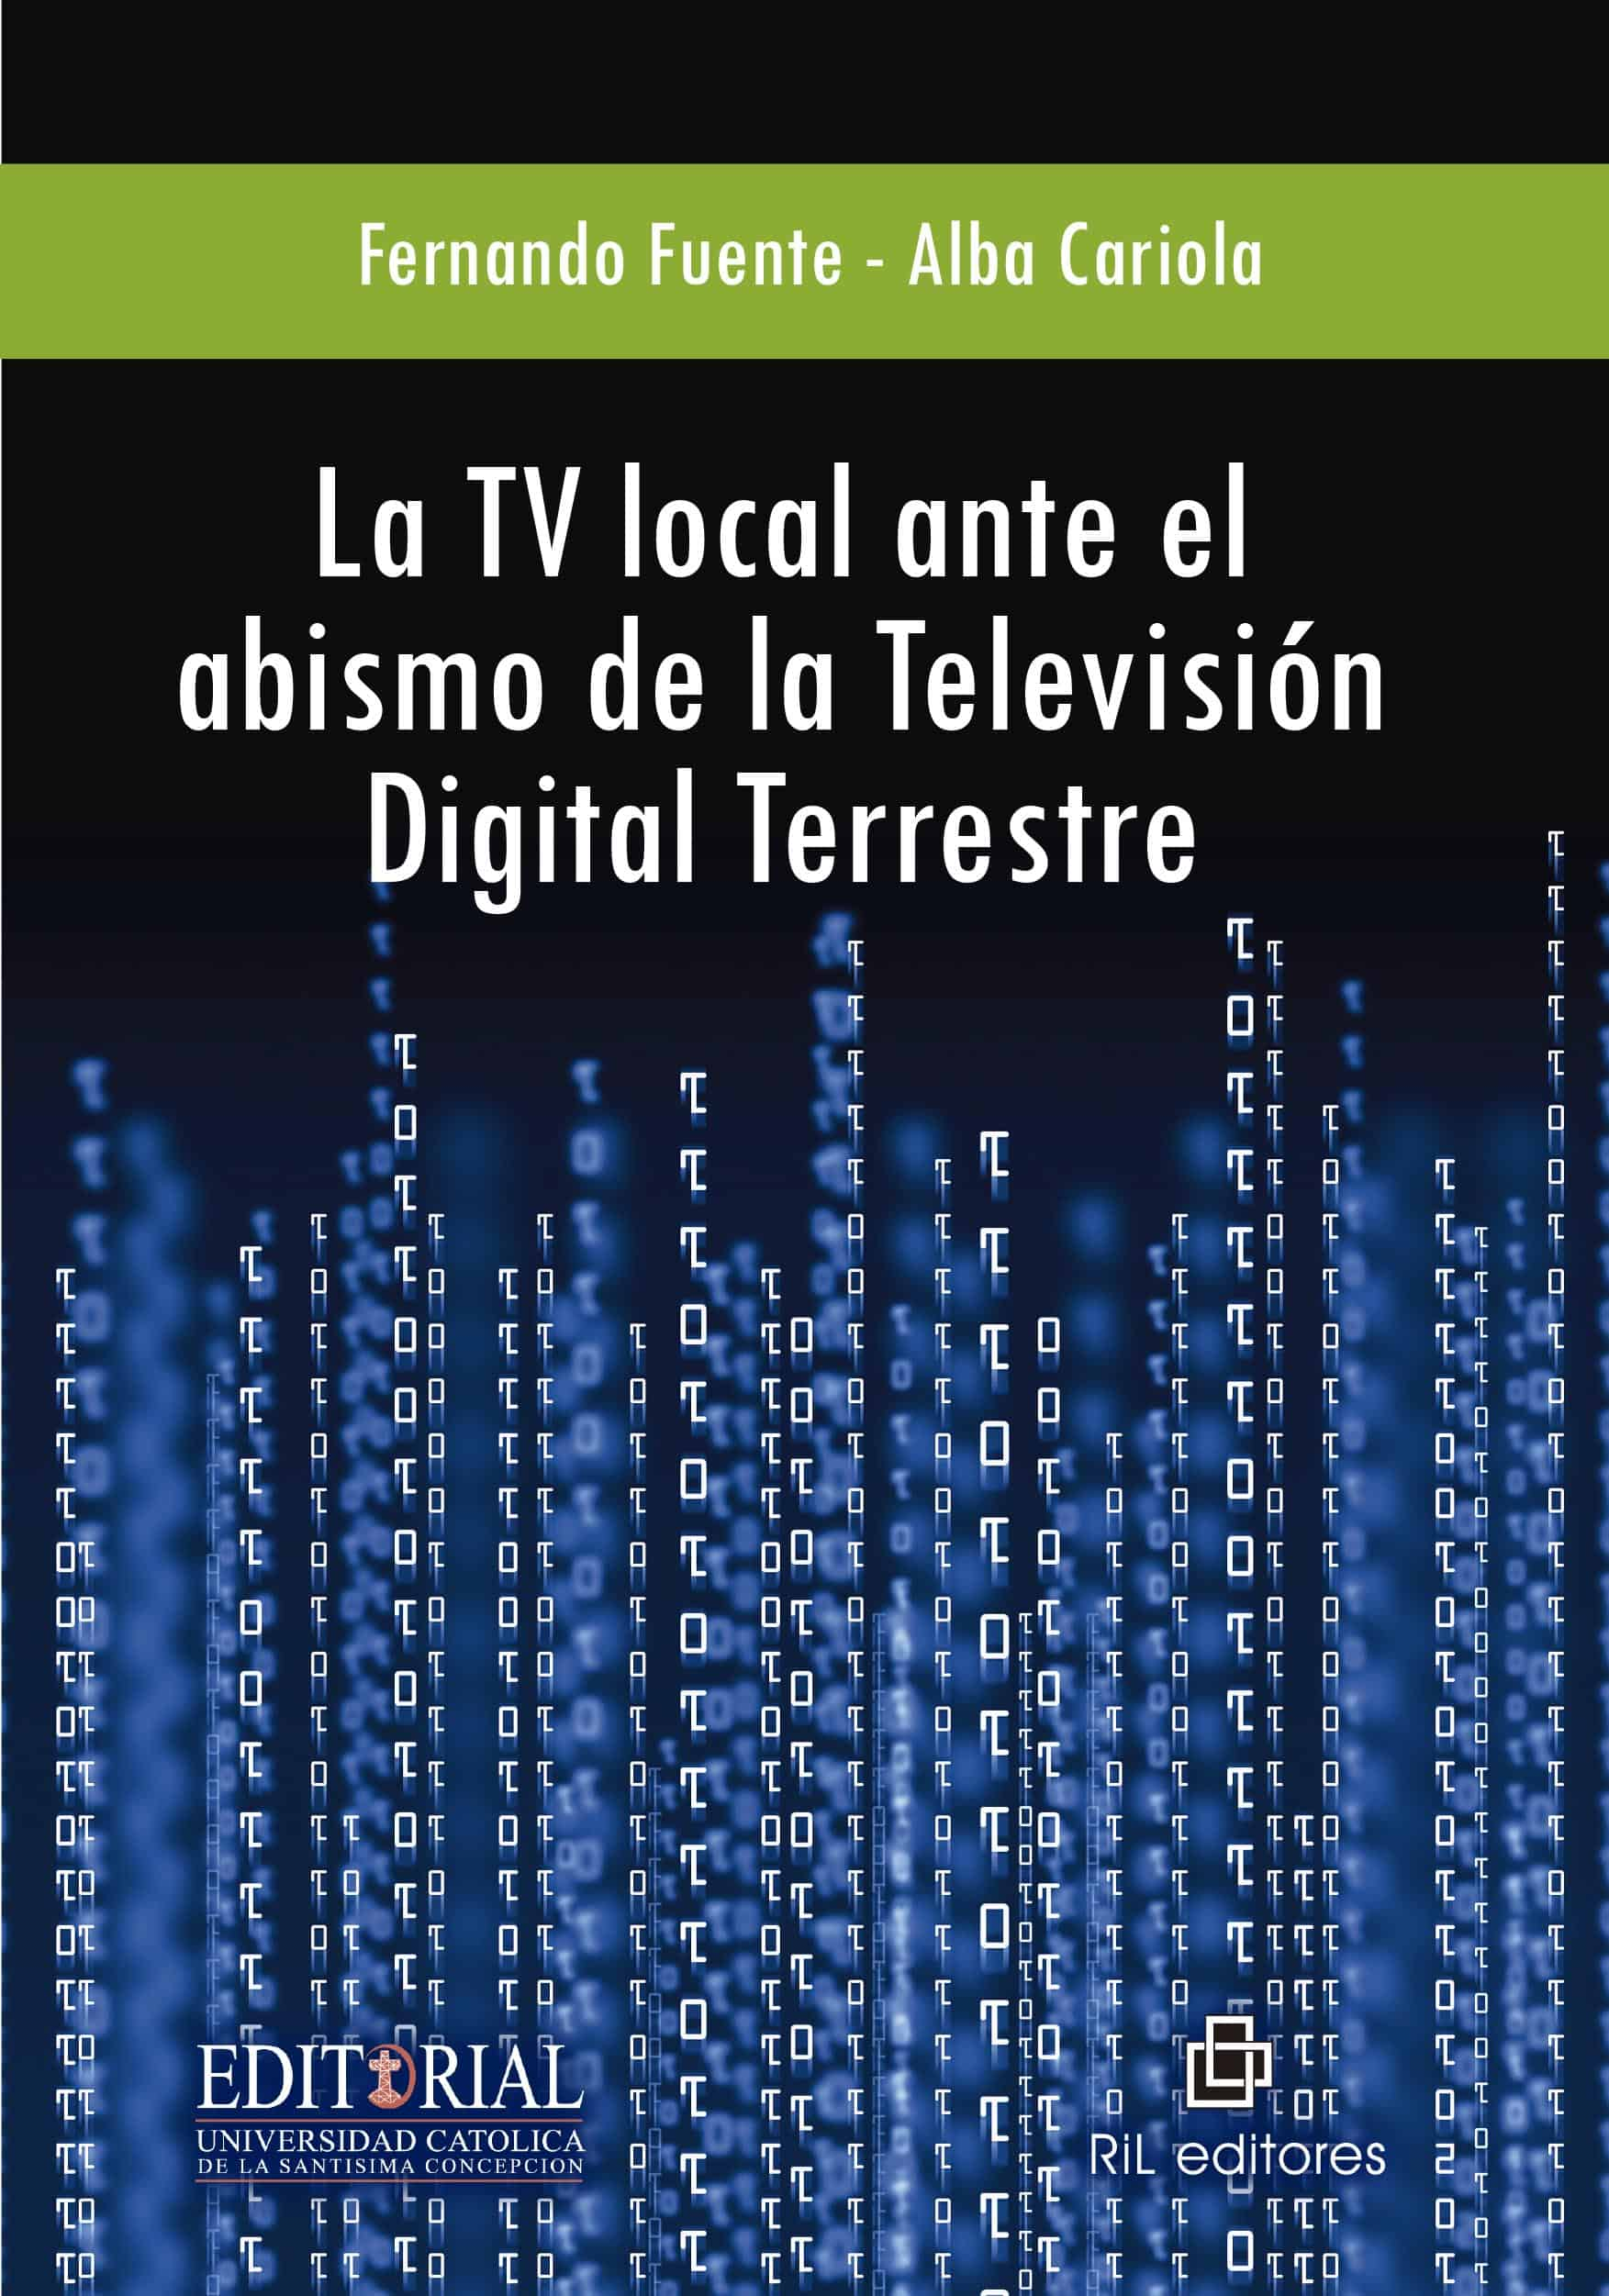 La TV local ante el abismo de la televisión digital terrestre 1